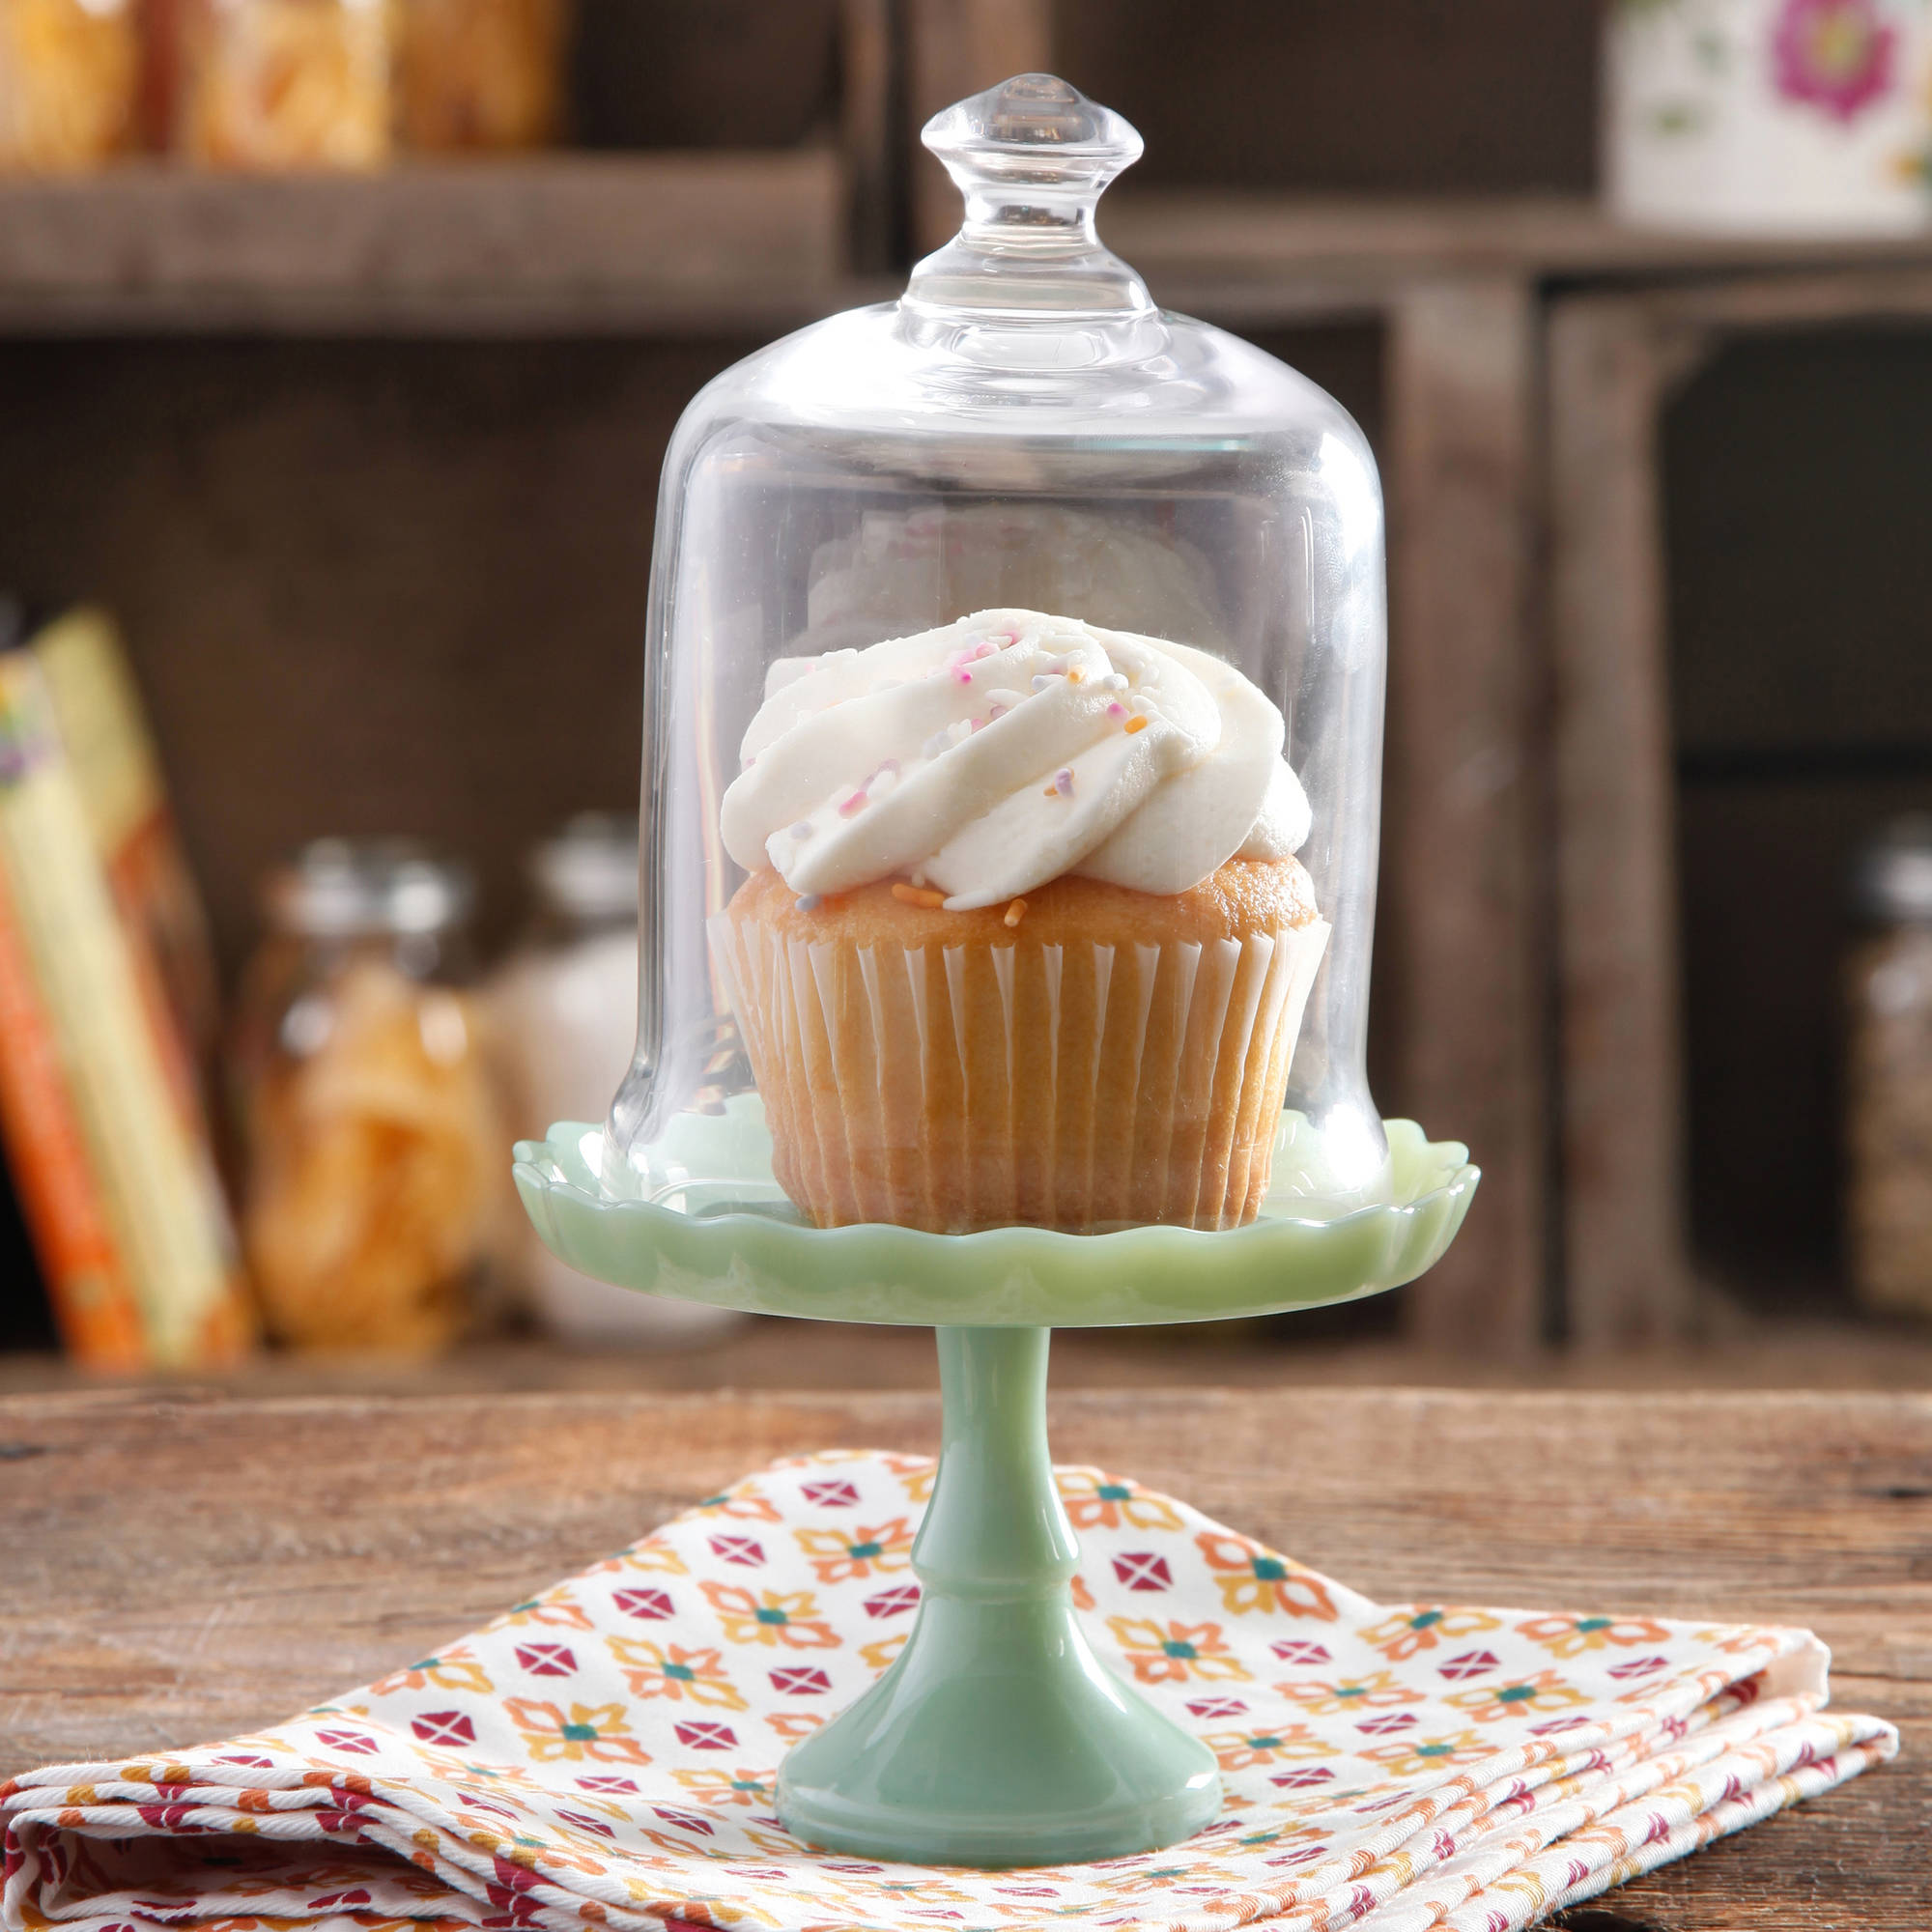 The Pioneer Woman Flea Market Mini Floral Cupcake Stand with Lid